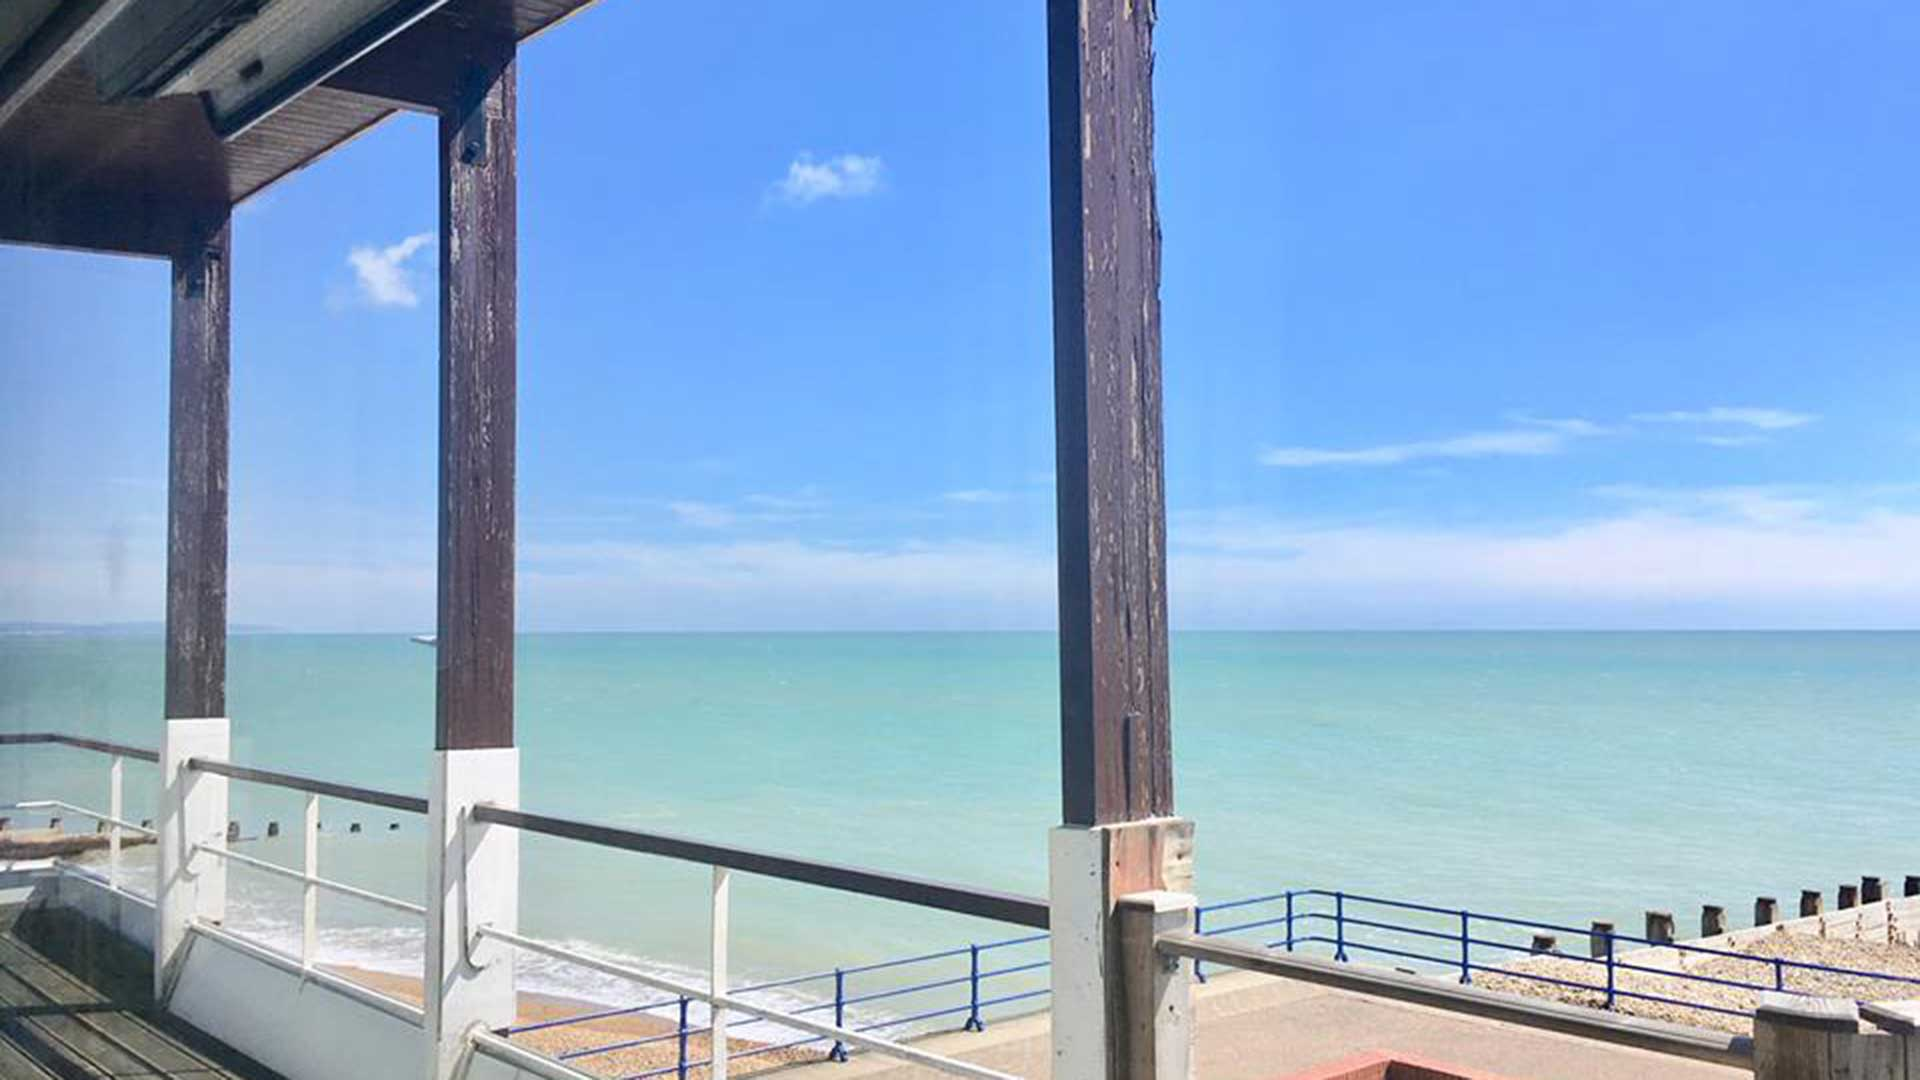 Looking out to sea from Natural Fitness & Therapies balcony